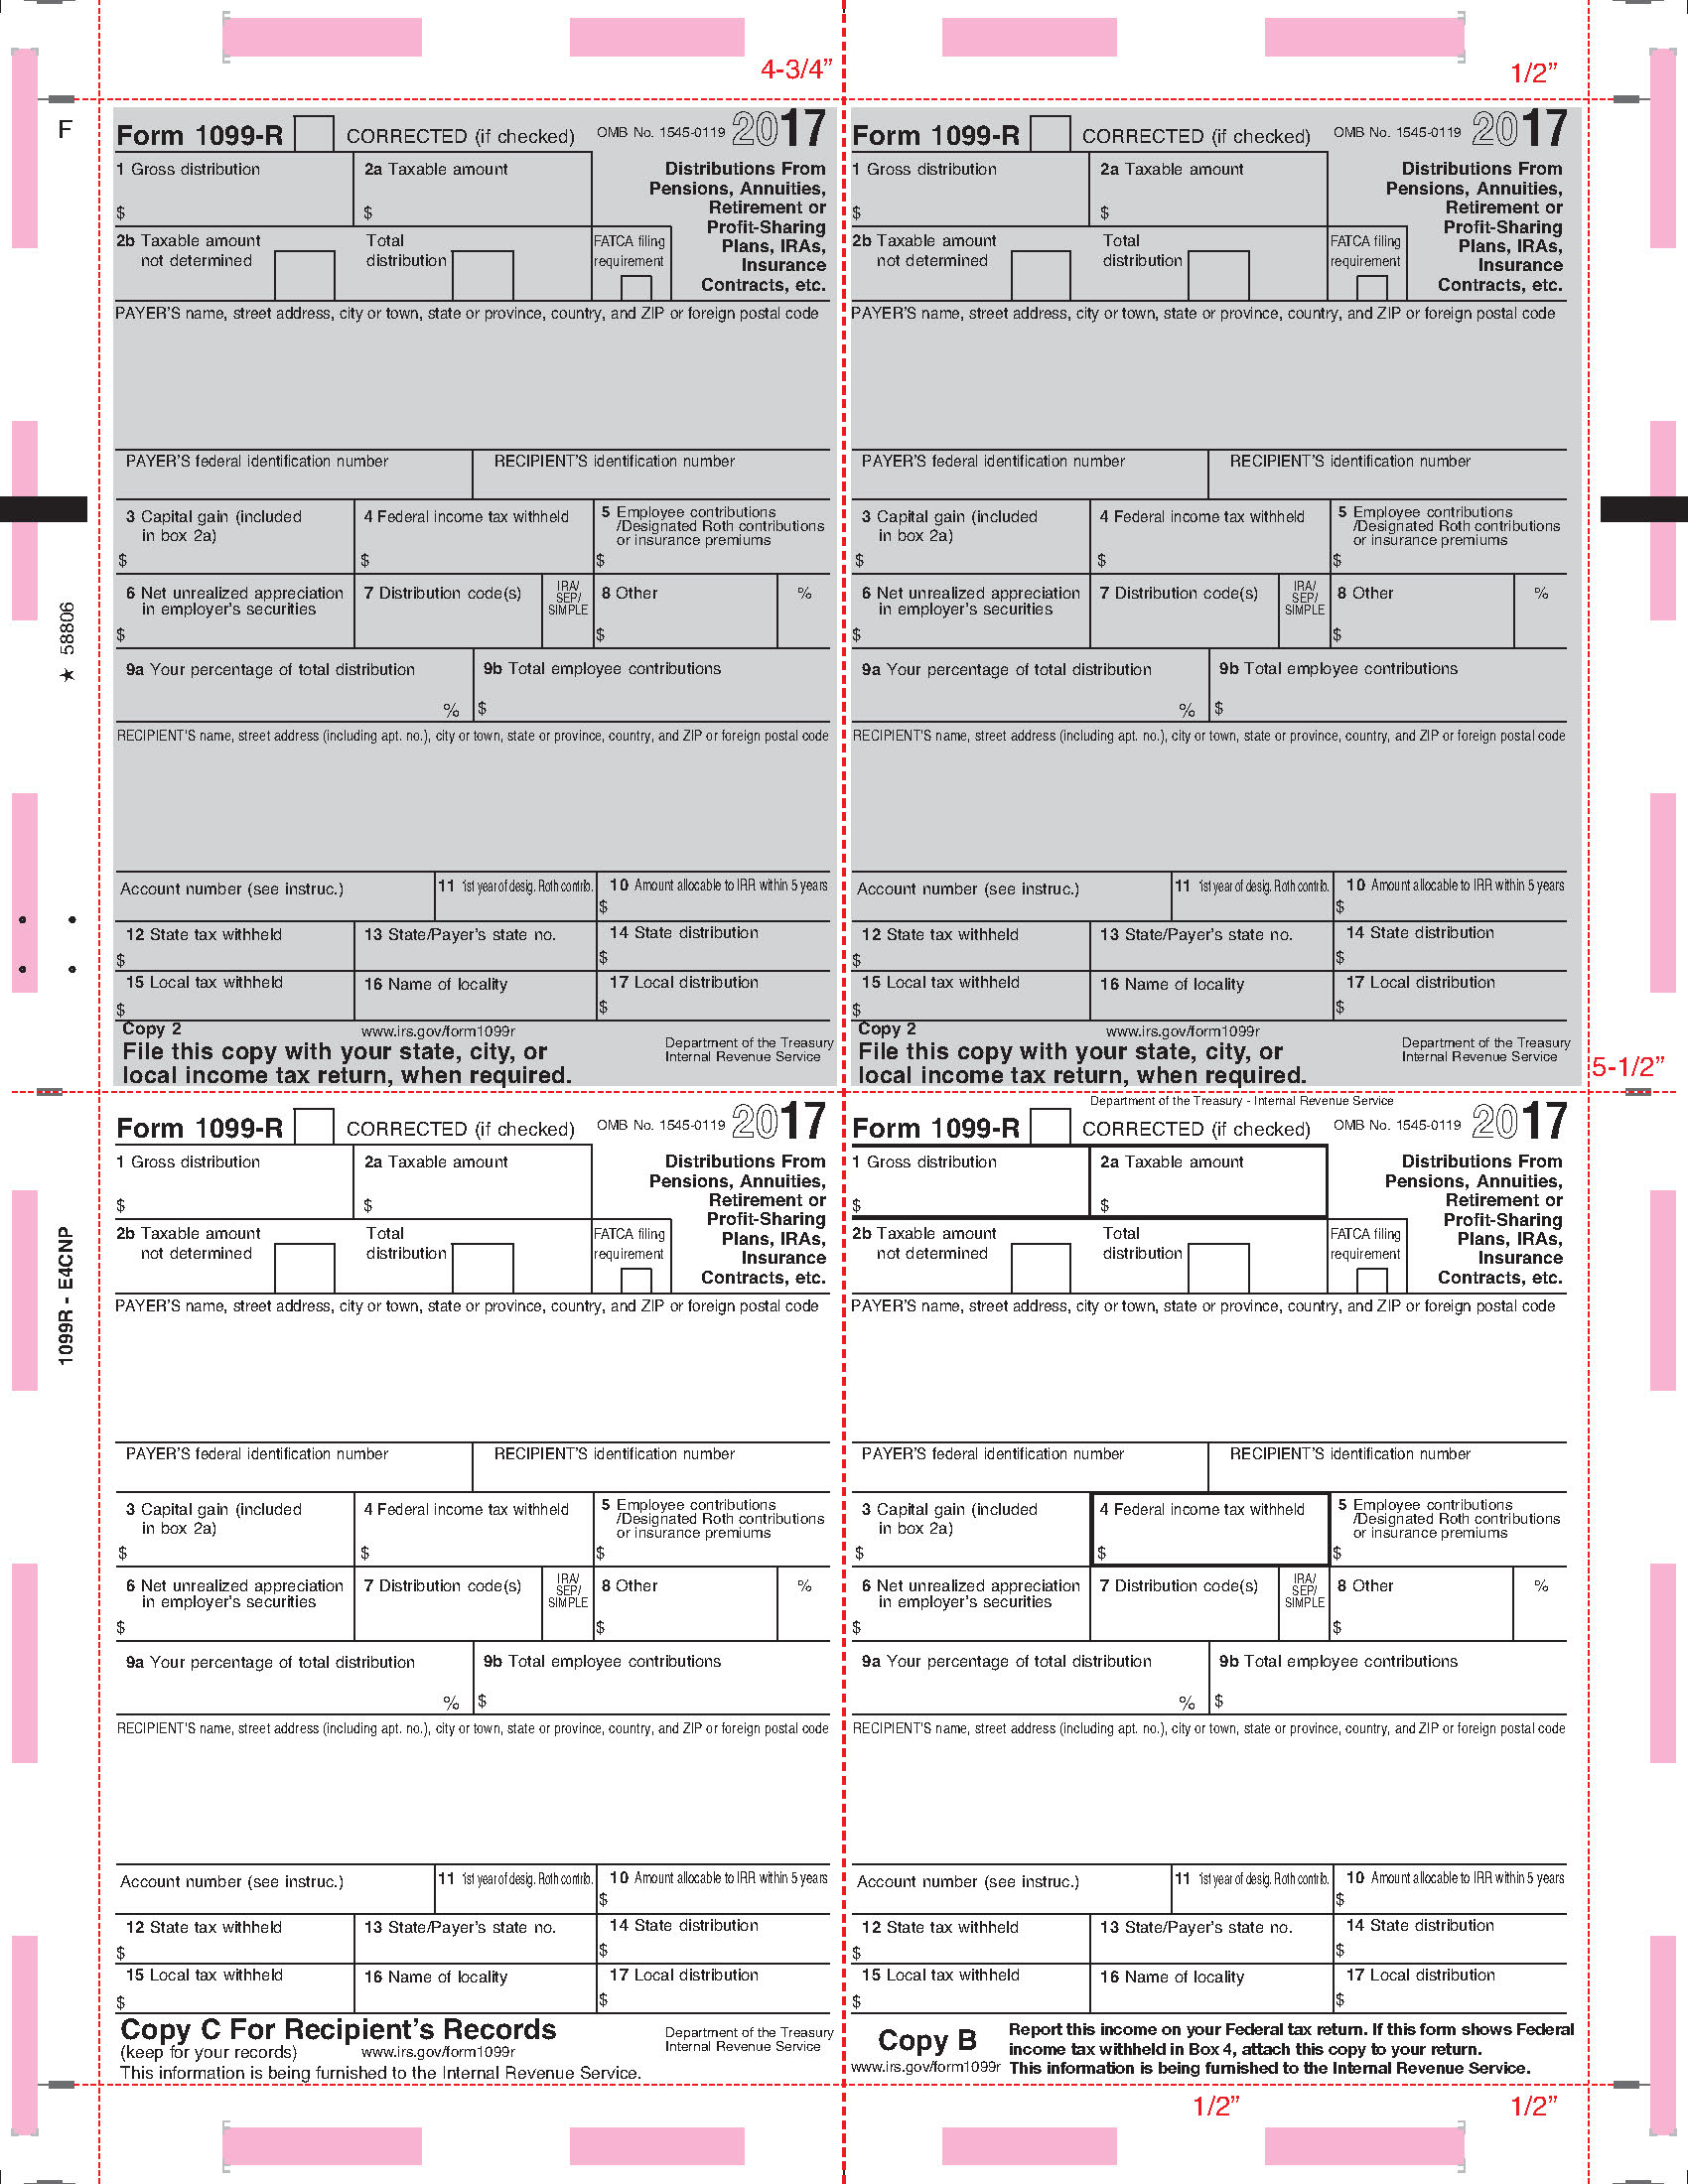 Tax form r csa 1099r striking 1099 templates rules for providing.